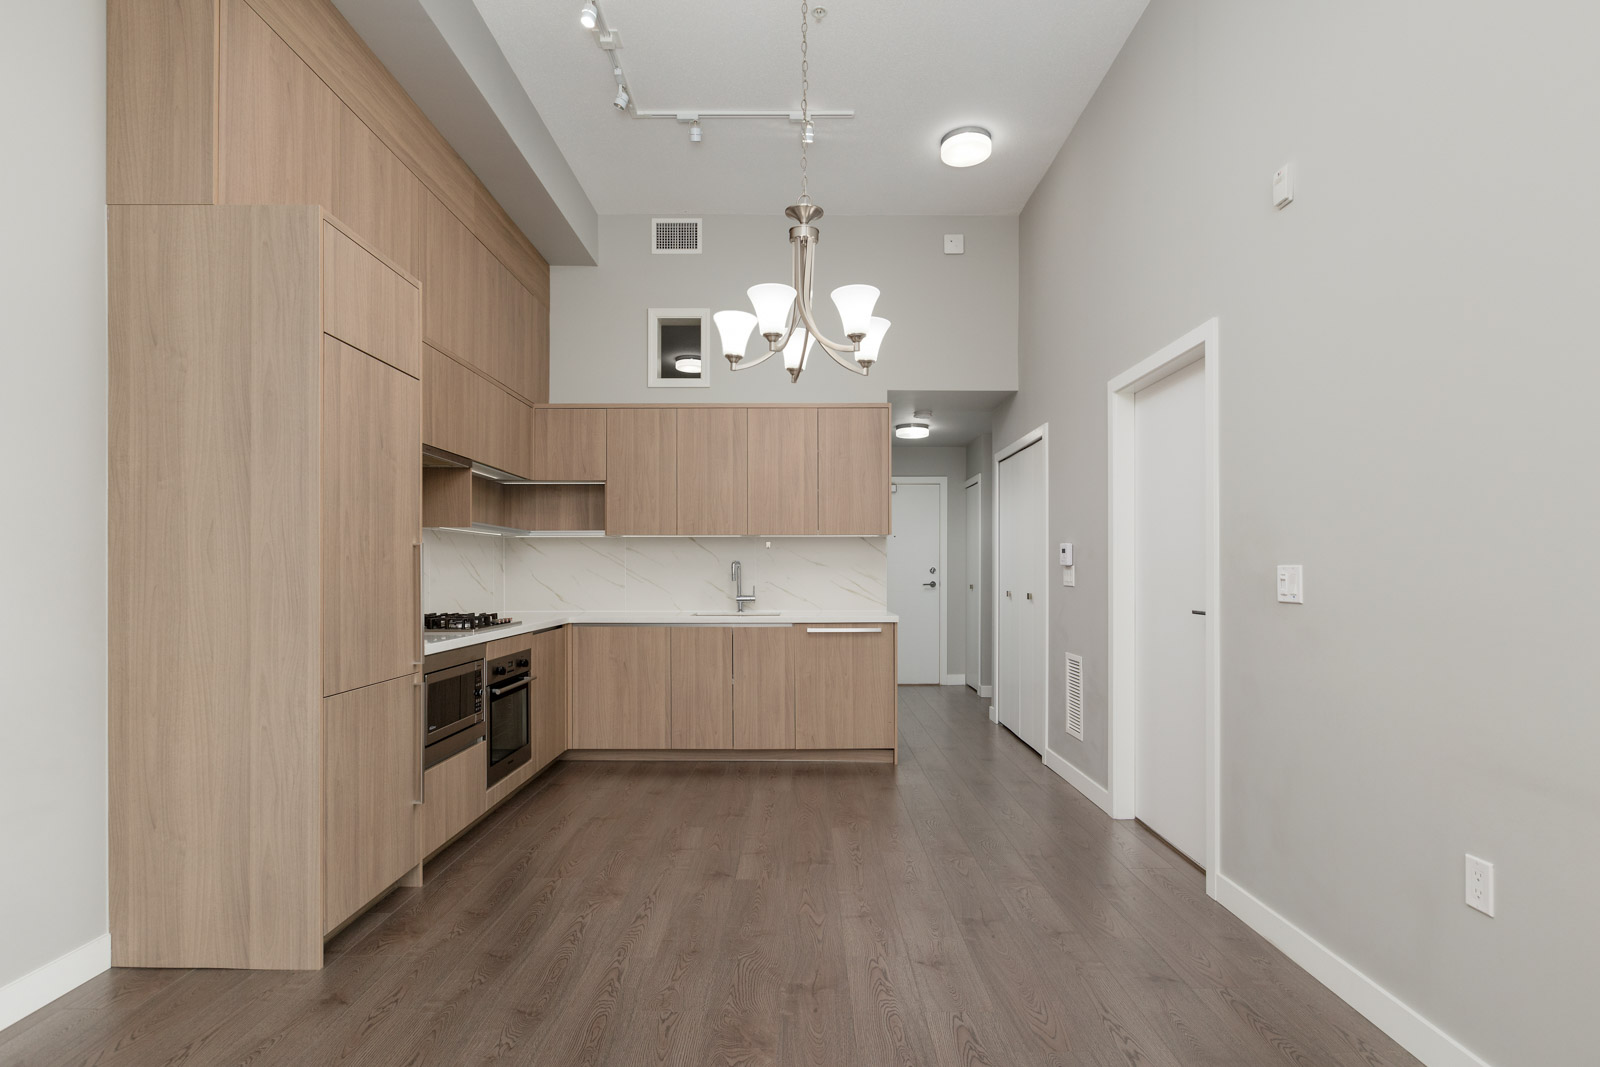 kitchen in rental townhome at Omega in the Cambie + Marine neighbourhood of Richmond